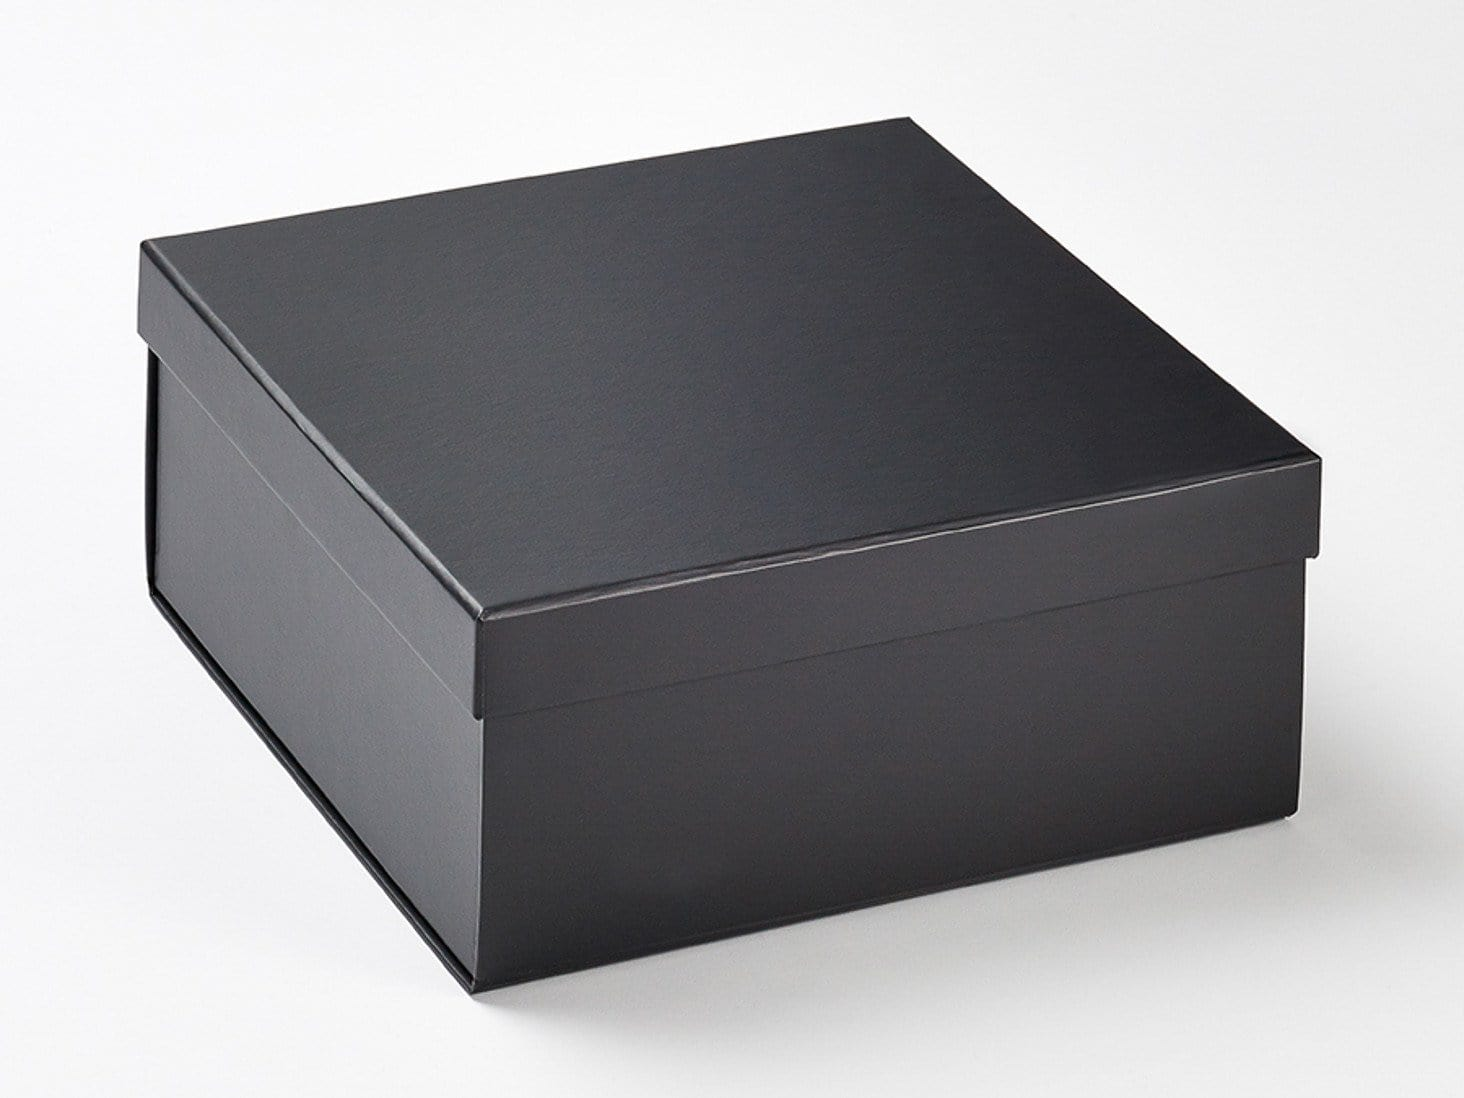 Black Medium Lift Off Lid Gift Box With Lid Assembled